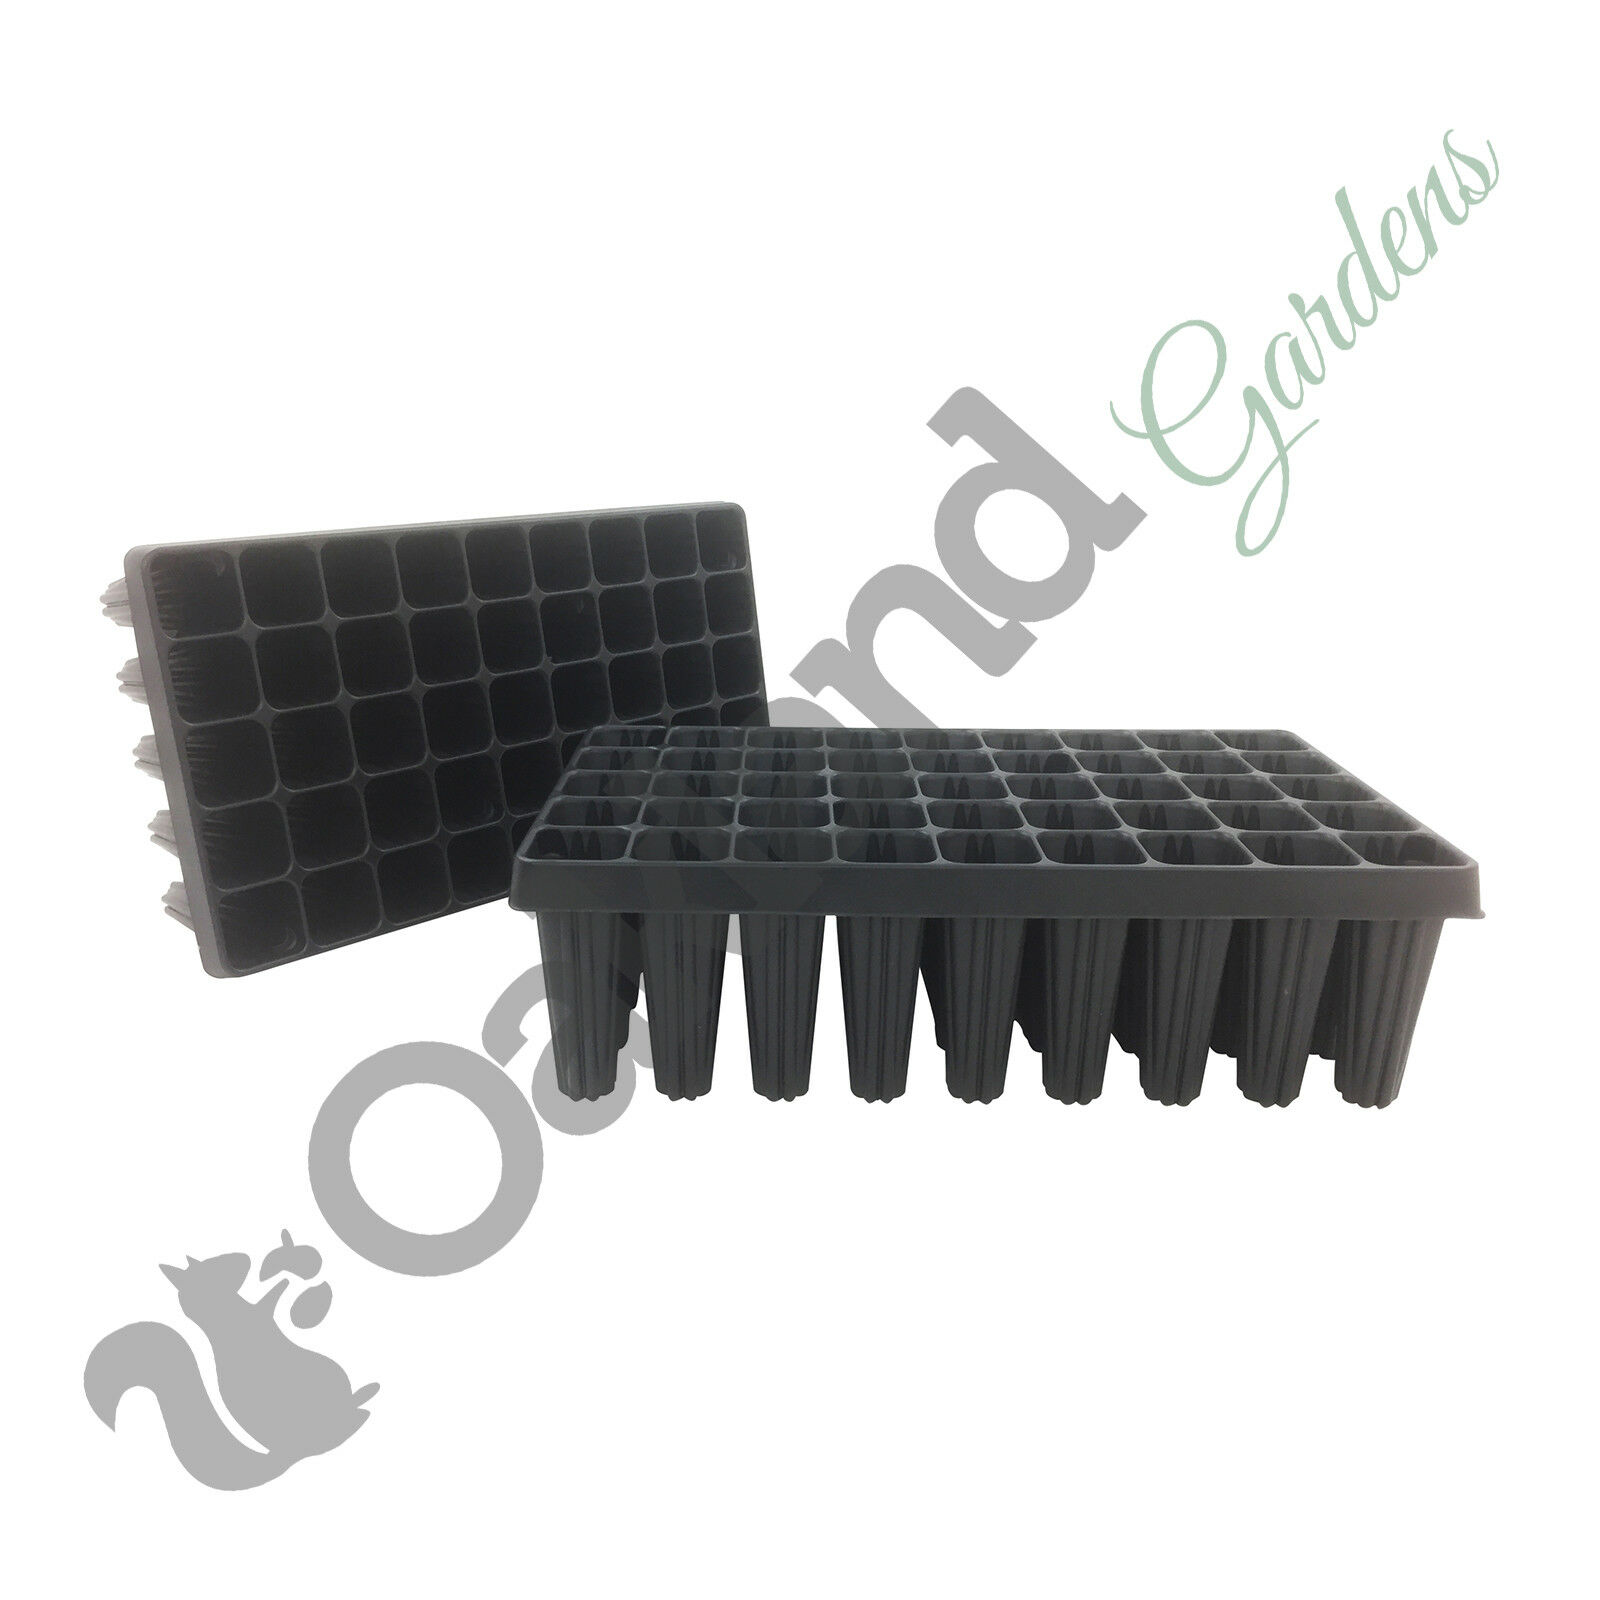 1 x 45 Cell Deep Rootrainers Plug Plant Seed Tray Root trainers Extra Large